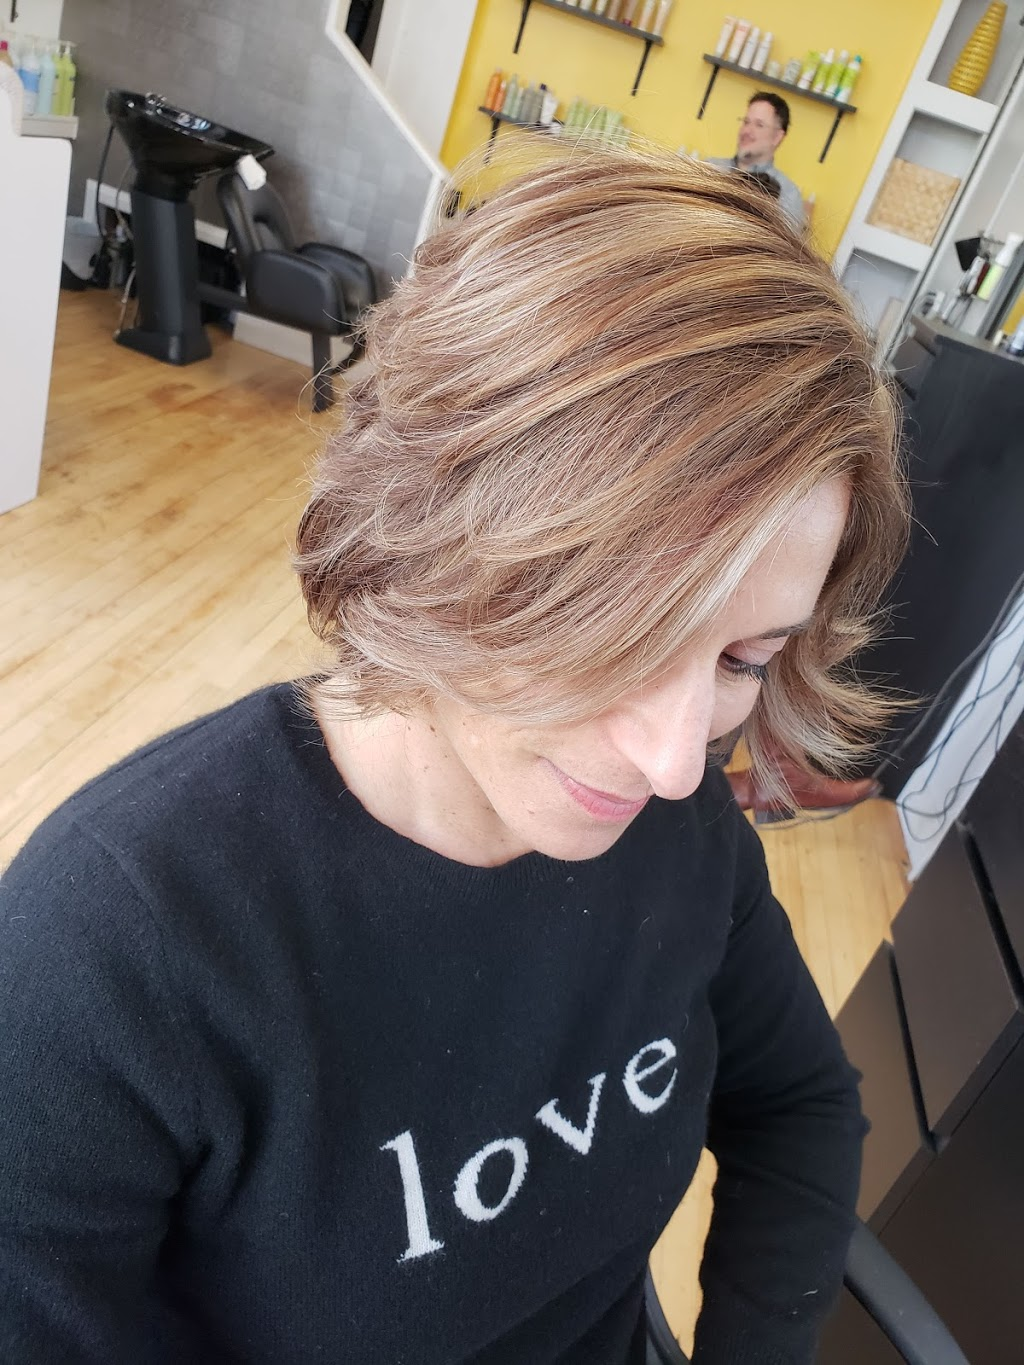 The Hive Hair Studio - hair care    Photo 5 of 5   Address: 153 Nicoll St, New Haven, CT 06511, USA   Phone: (203) 691-7334